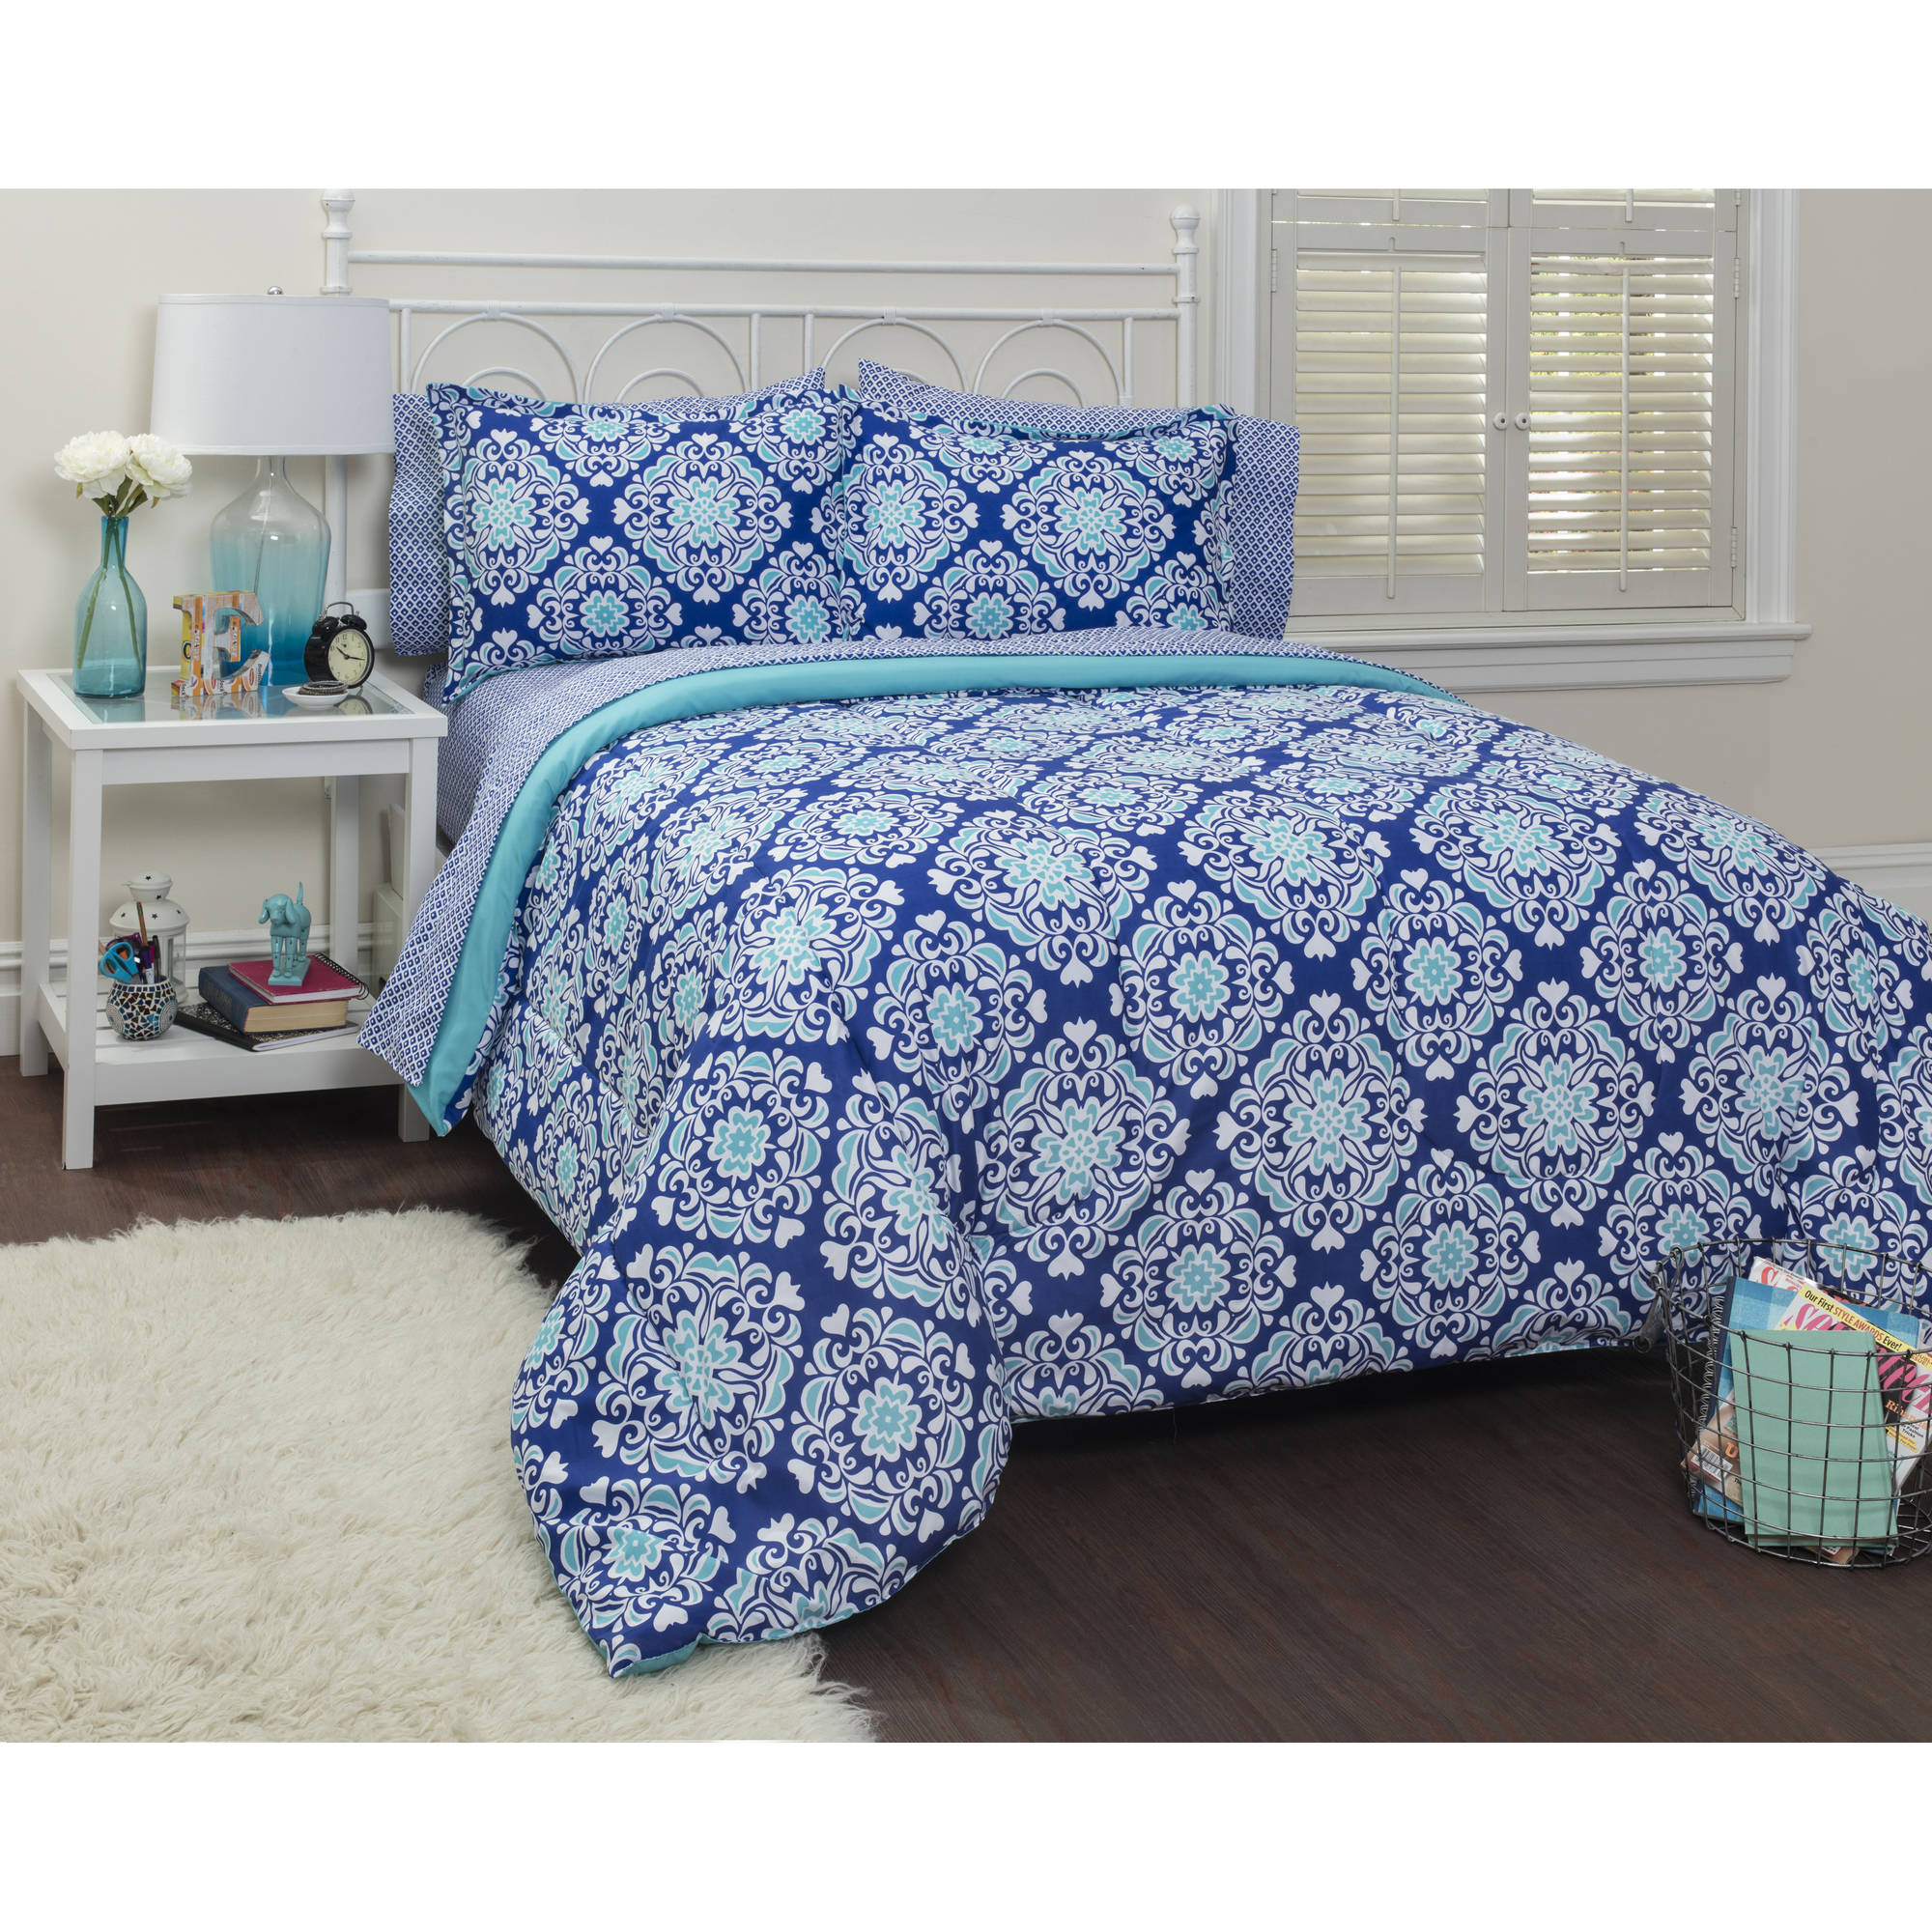 your zone jenna bed in a bag bedding set